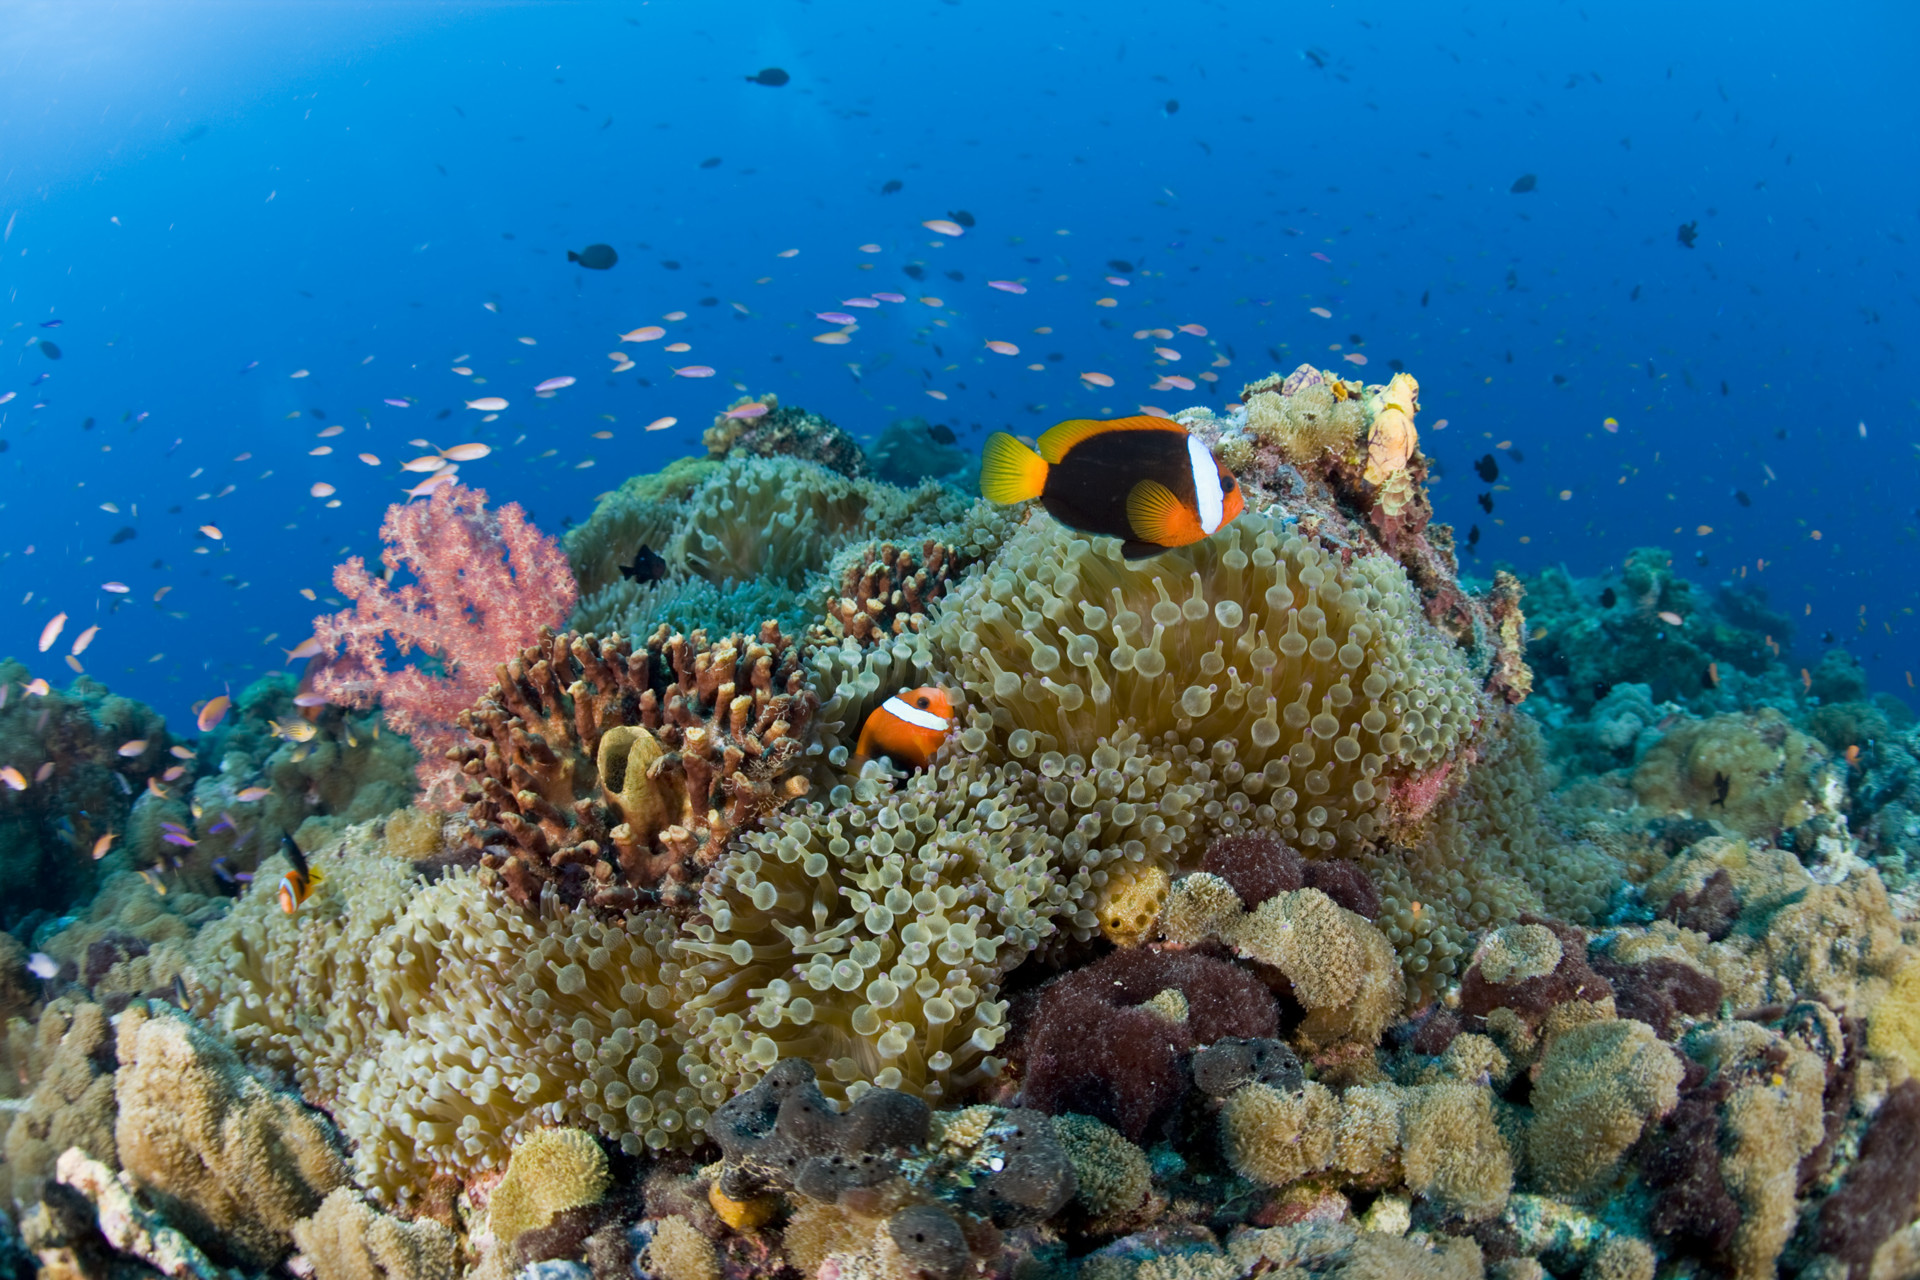 145527-png-beautiful-marine-life.jpg